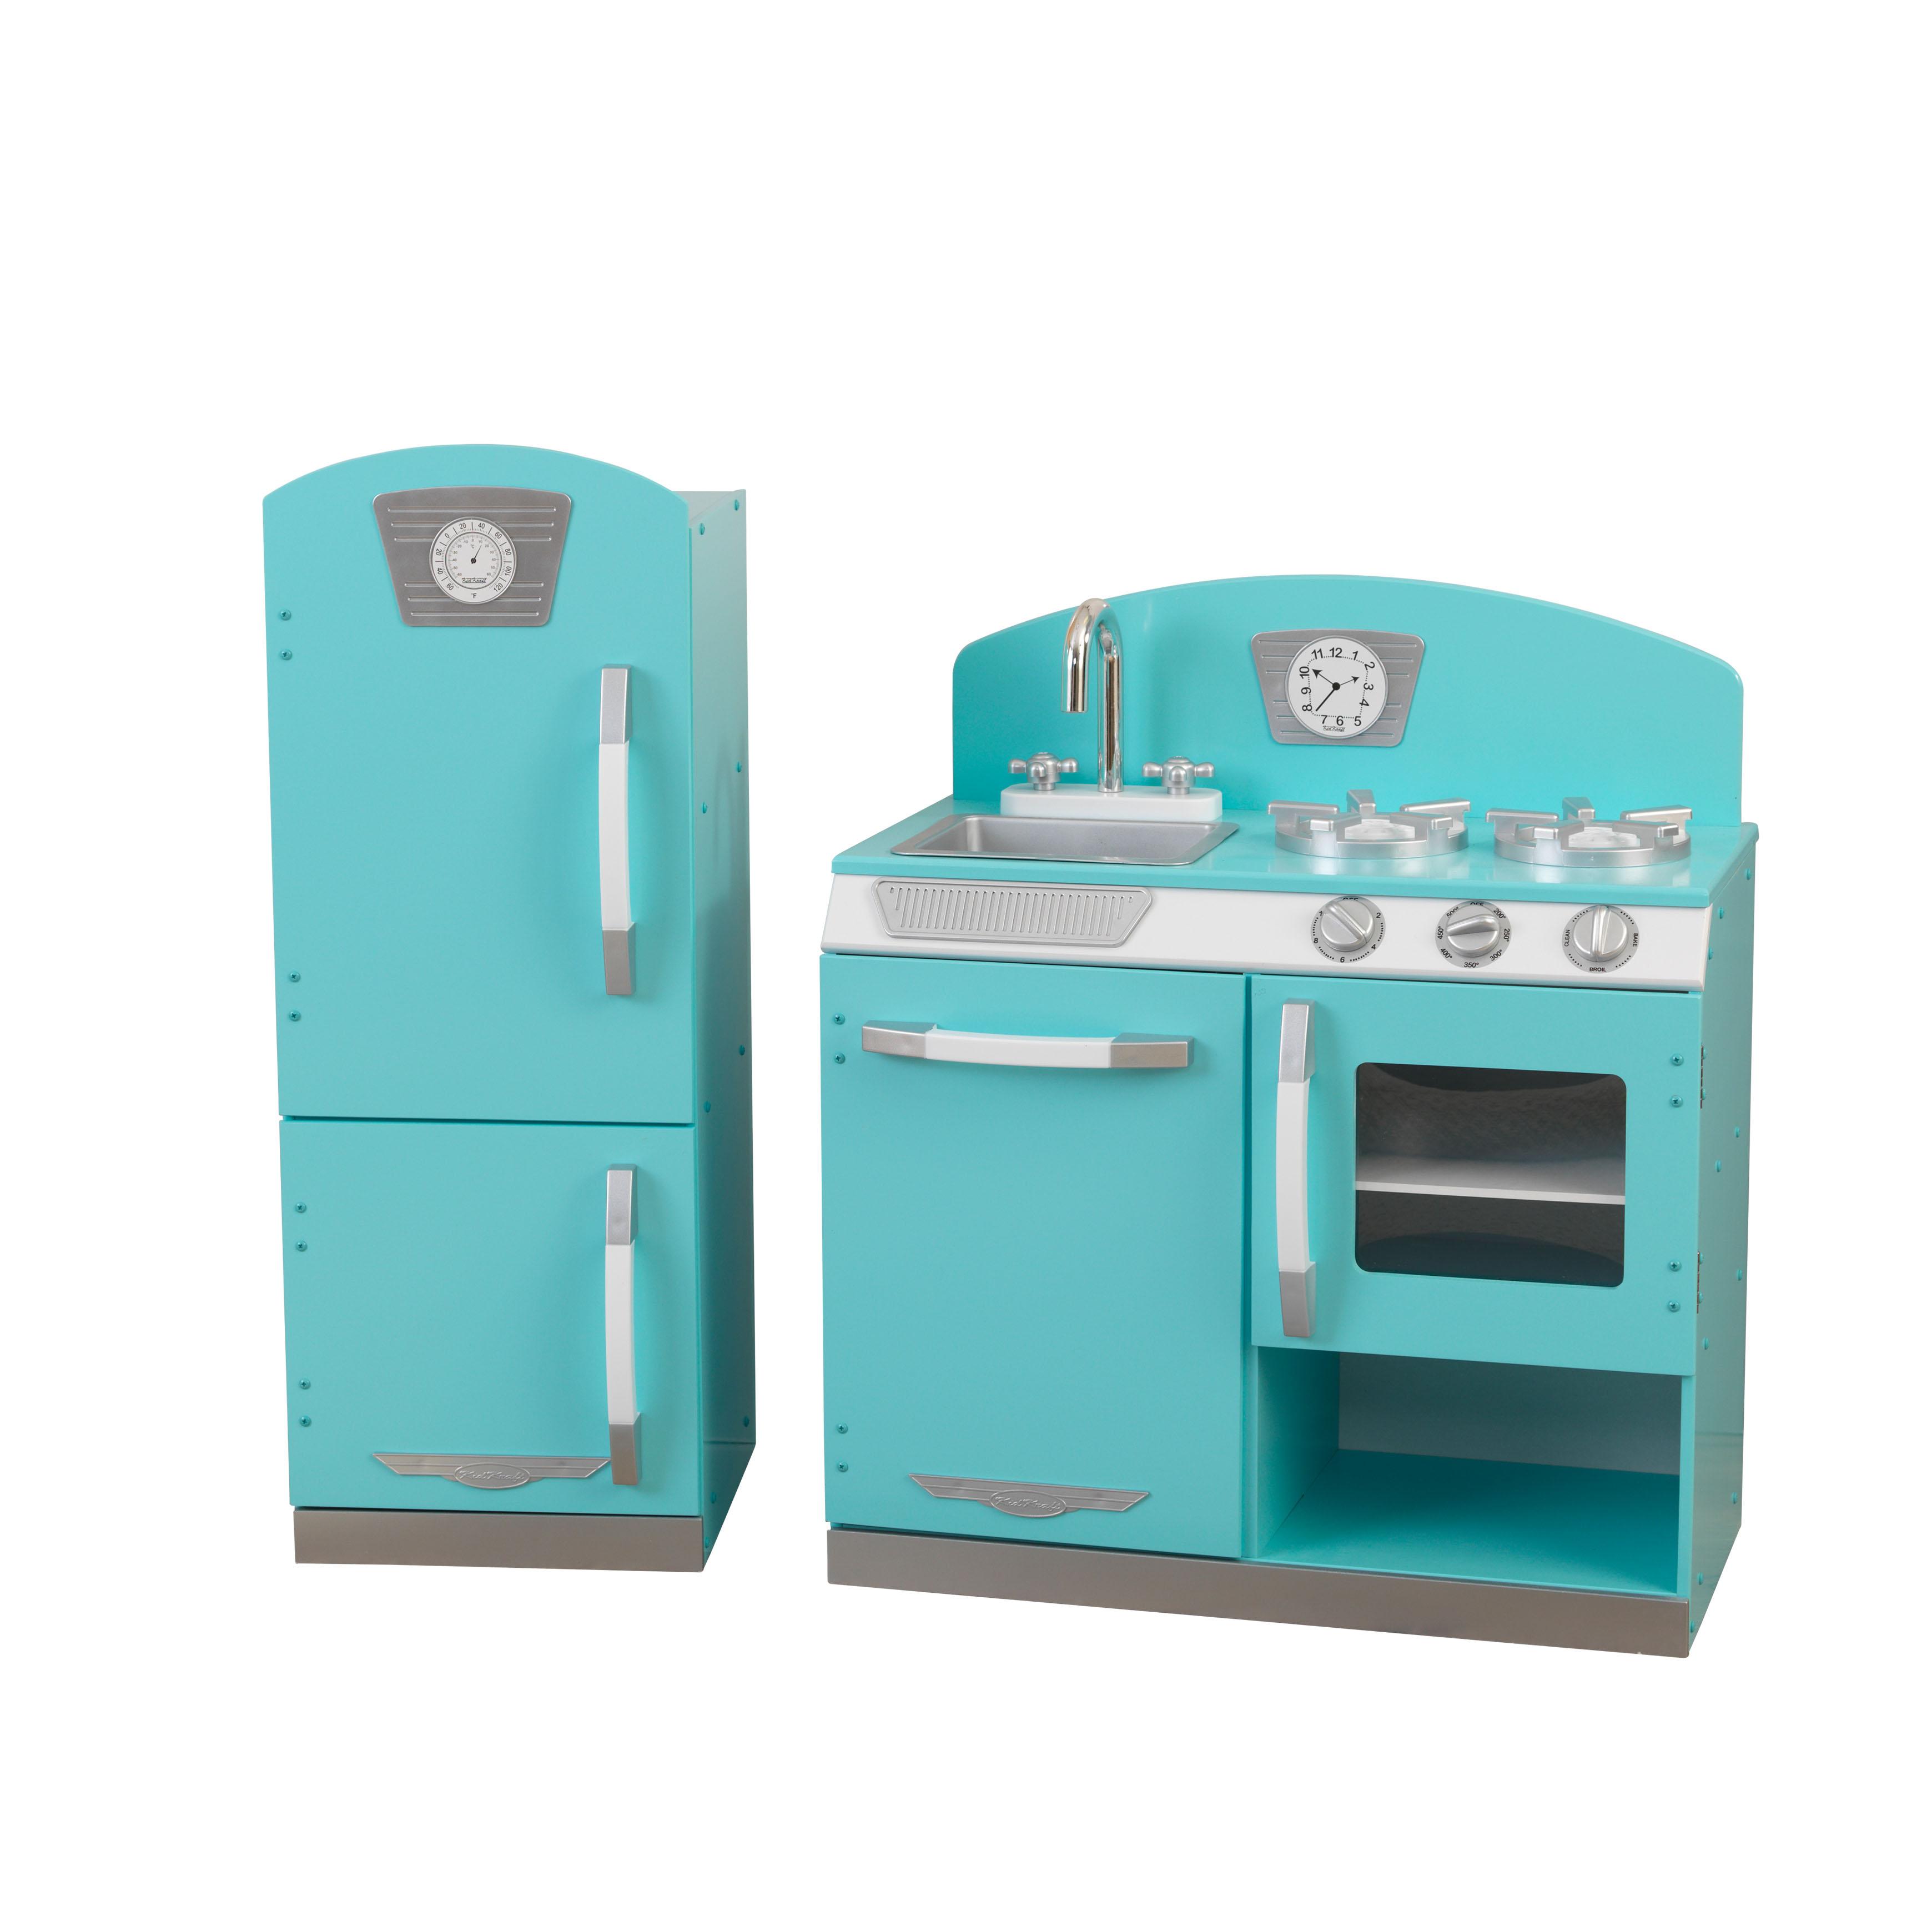 Kidkraft Retro Kitchen kidkraft blue retro kitchen and refrigerator - walmart